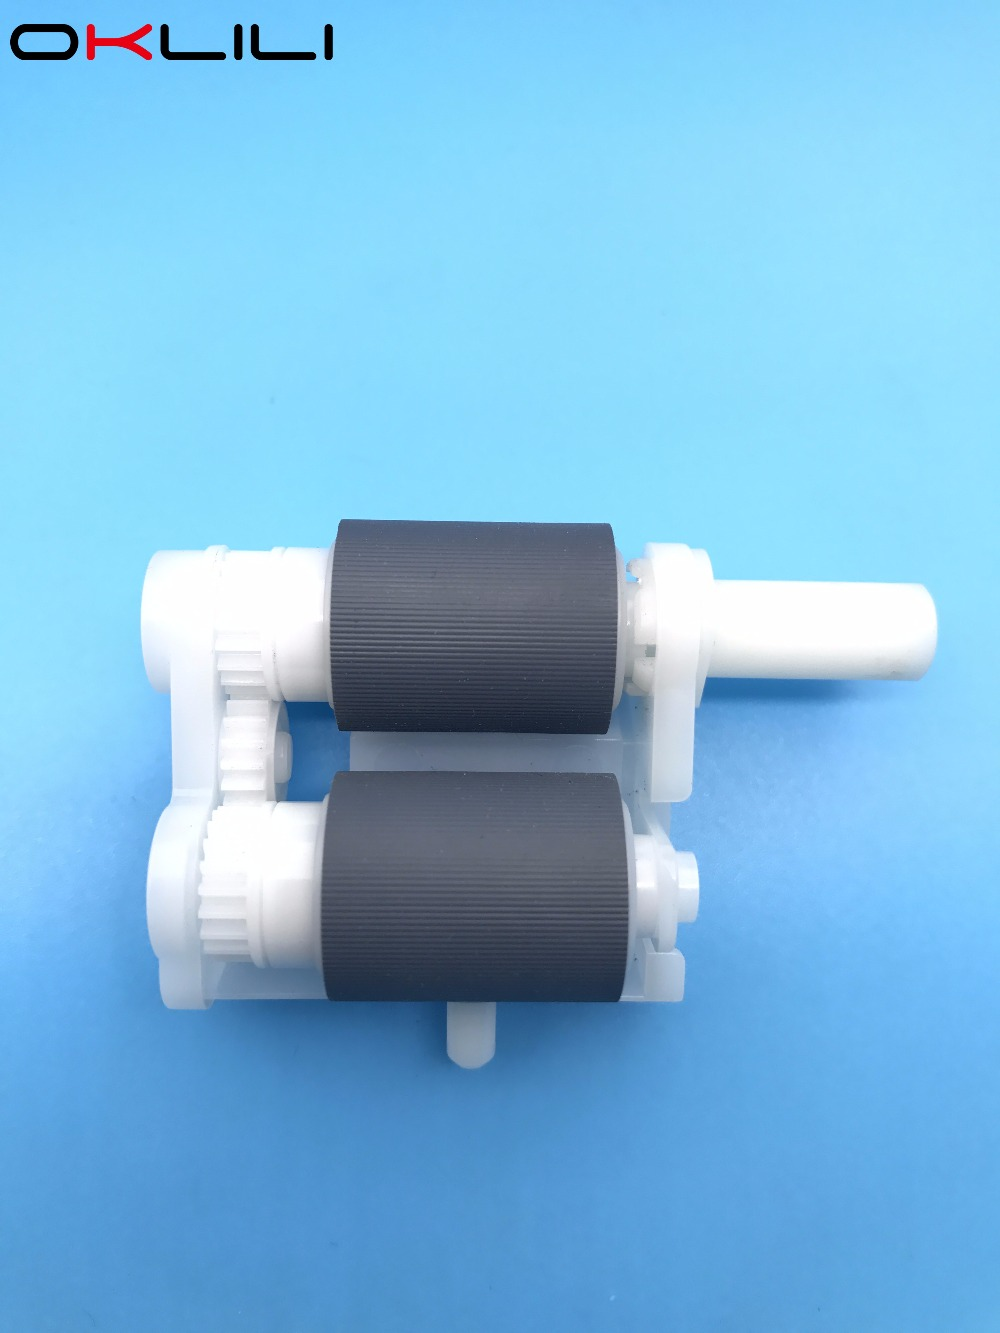 5X ORIGINAL NEW LY2093001 Pickup Roller for Brother DCP 7055 7060 7065 7070 HL 2130 2132 2135 2220 2230 2240 2250 2270 2275 2280 brother x 5